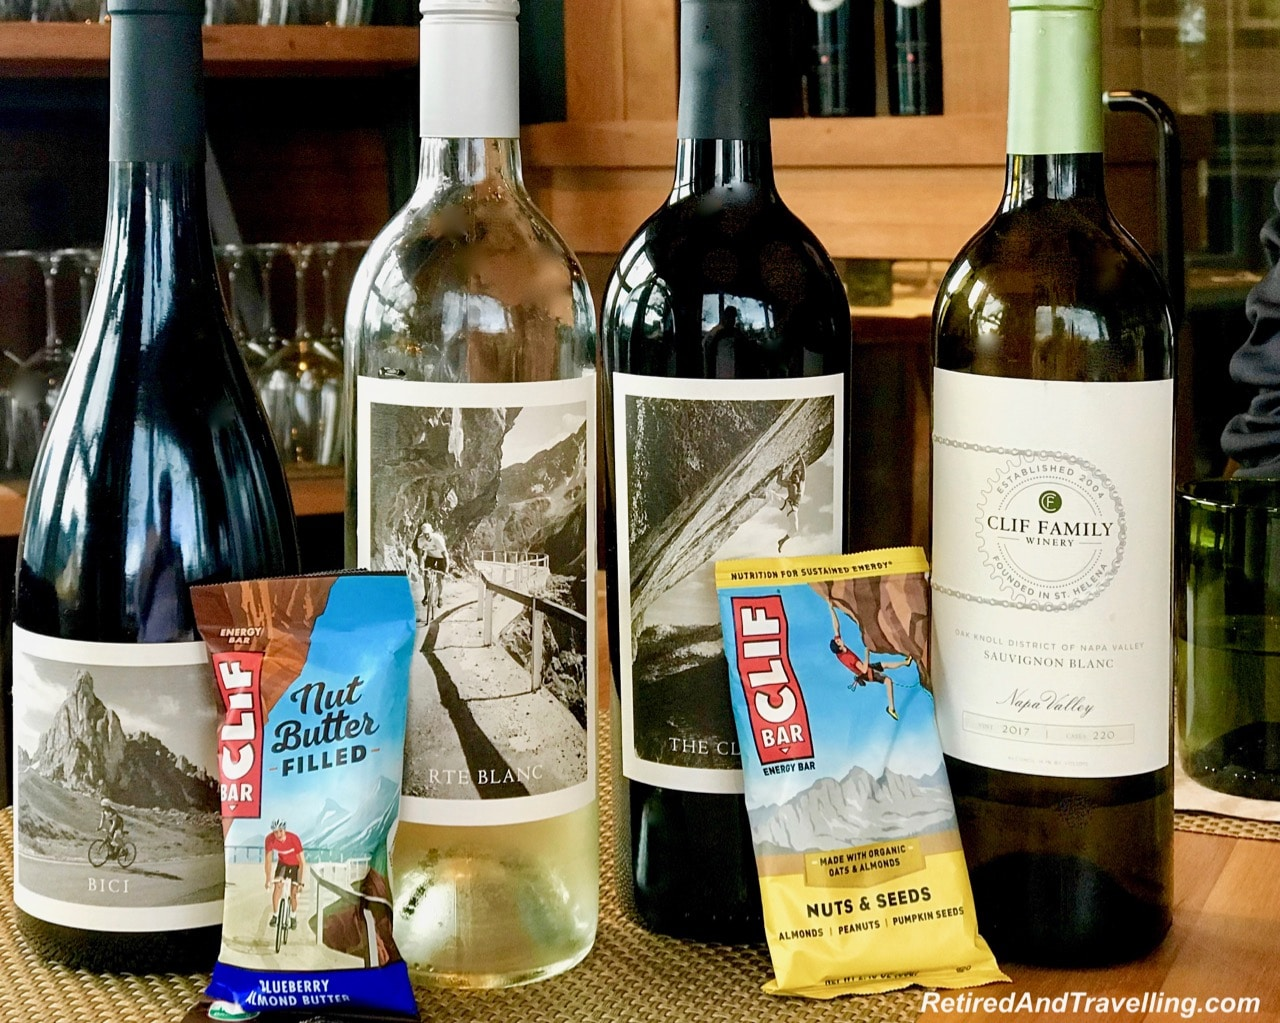 Clif Family Winery Wine Tasting - Napa For A Weekend Things To Do.jpg